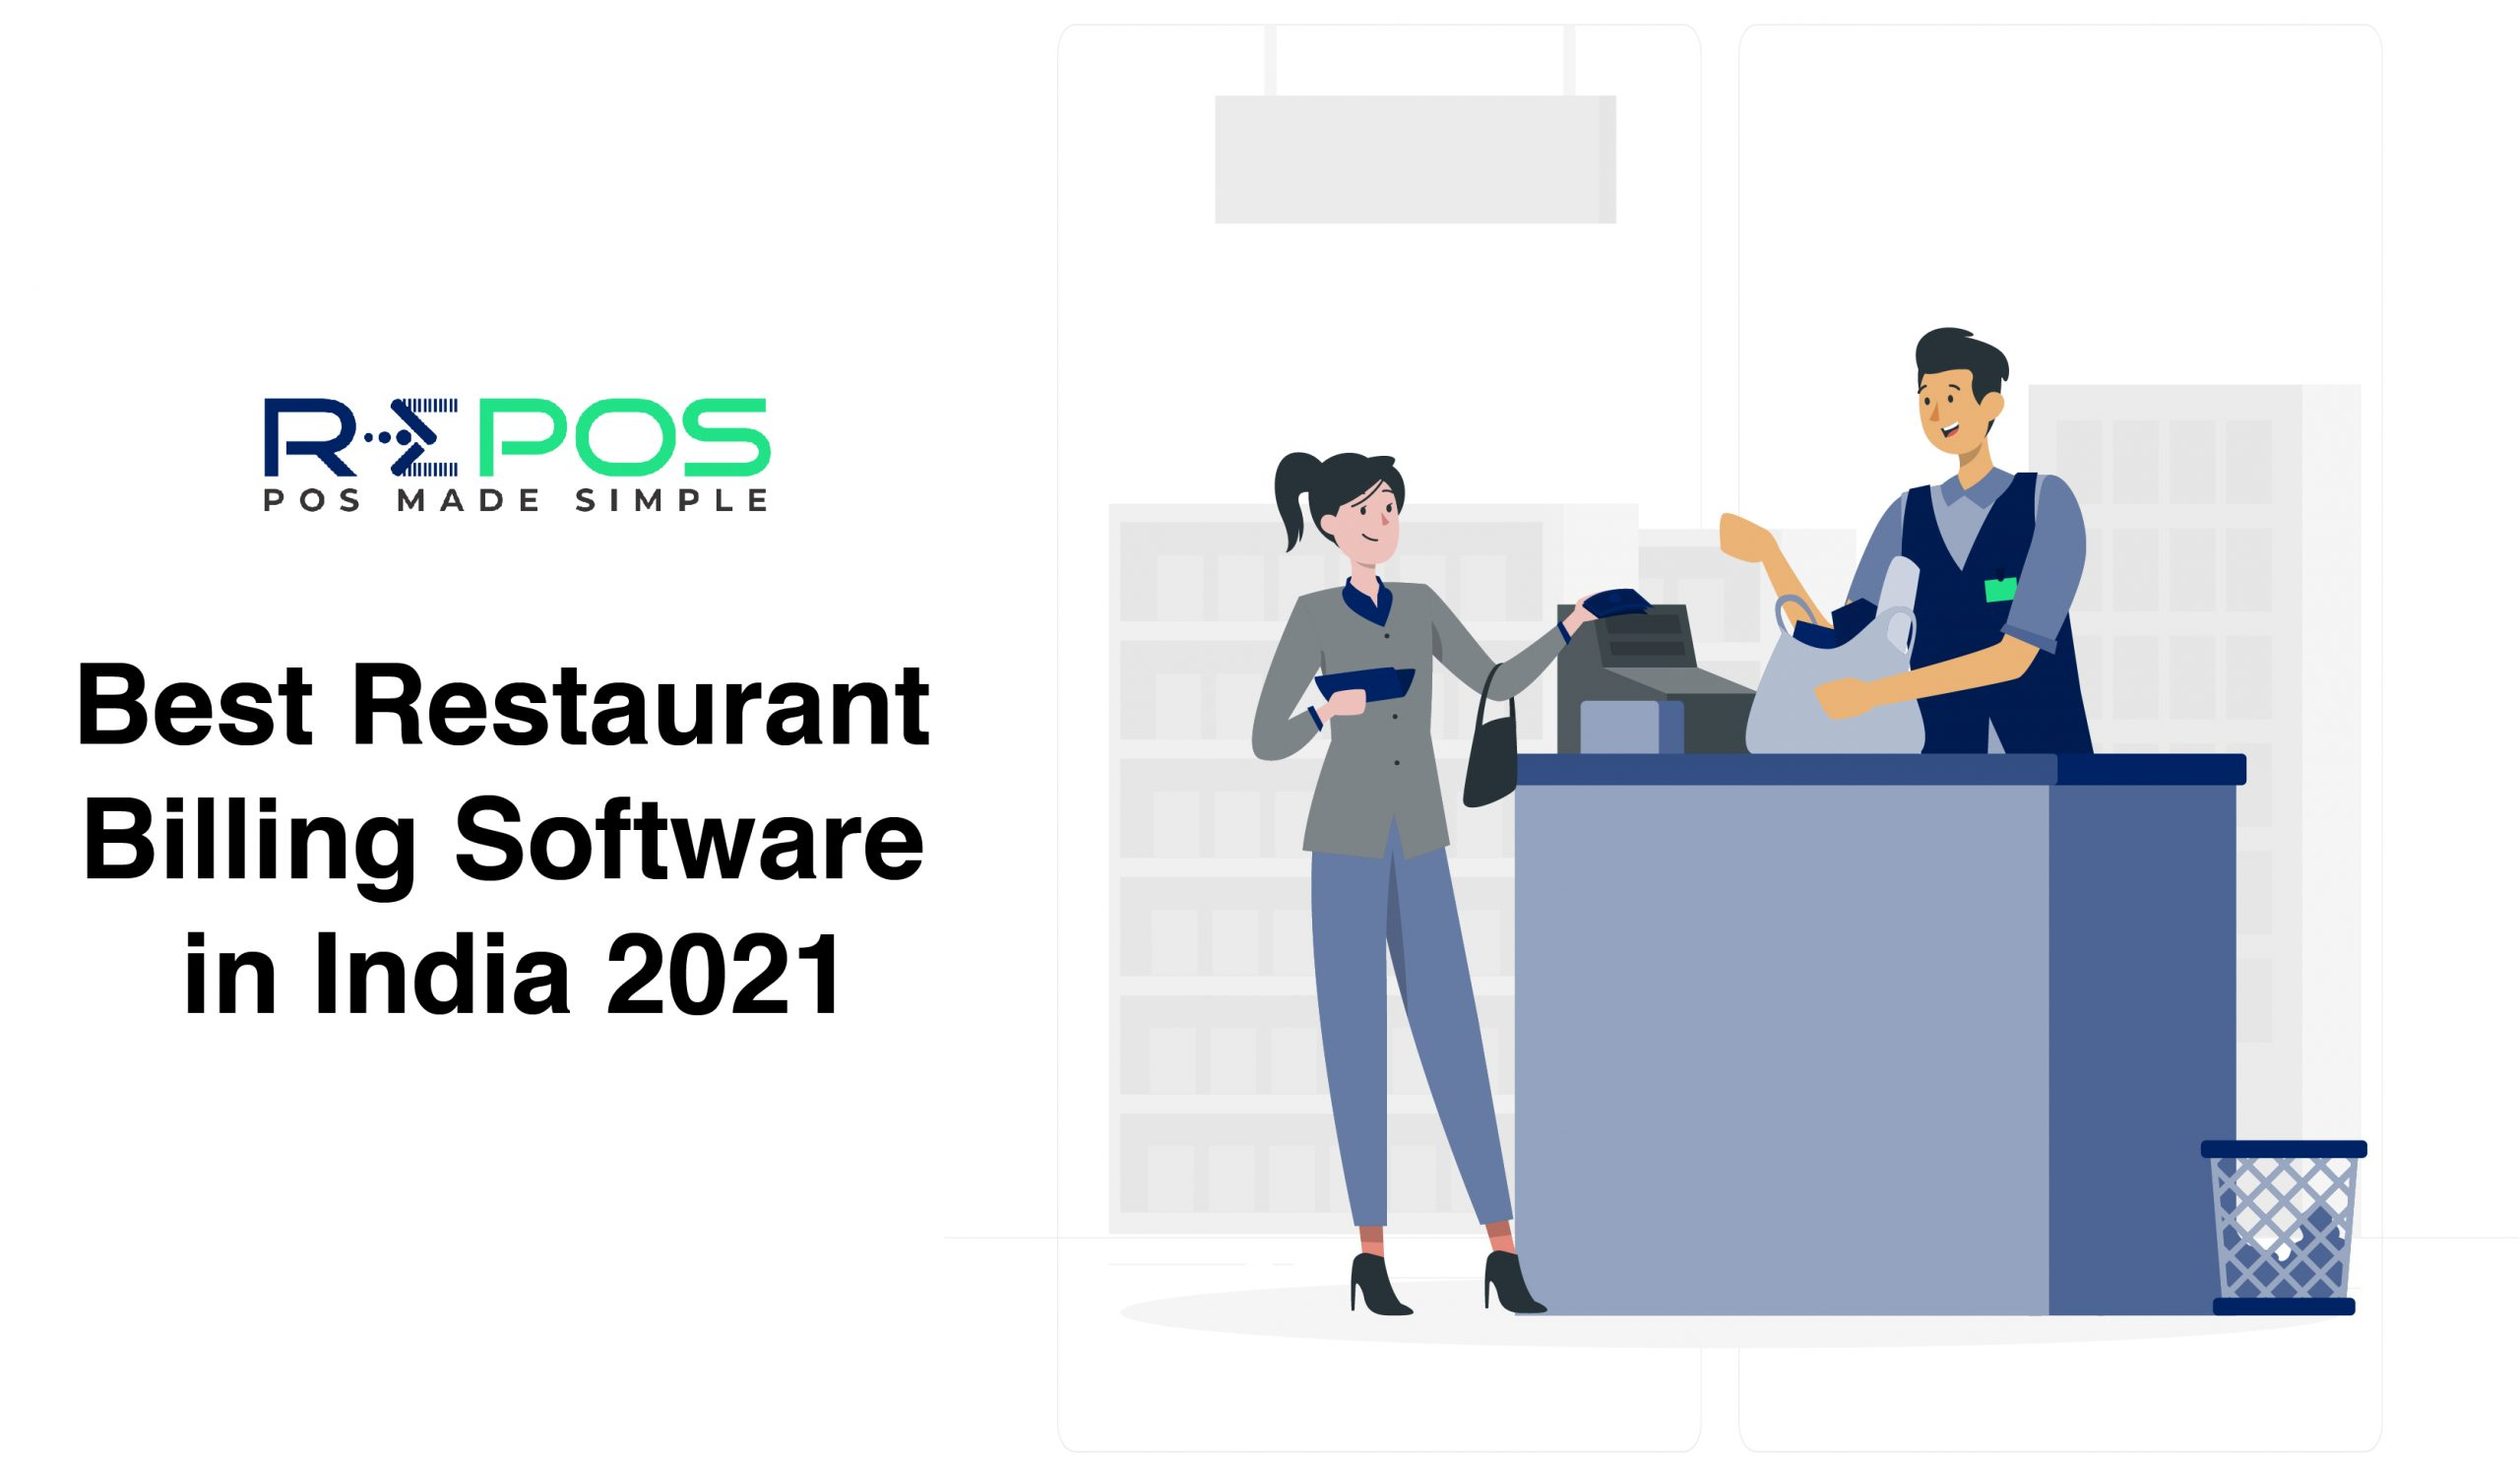 No.1 Best Restaurant Billing Software in India 2021